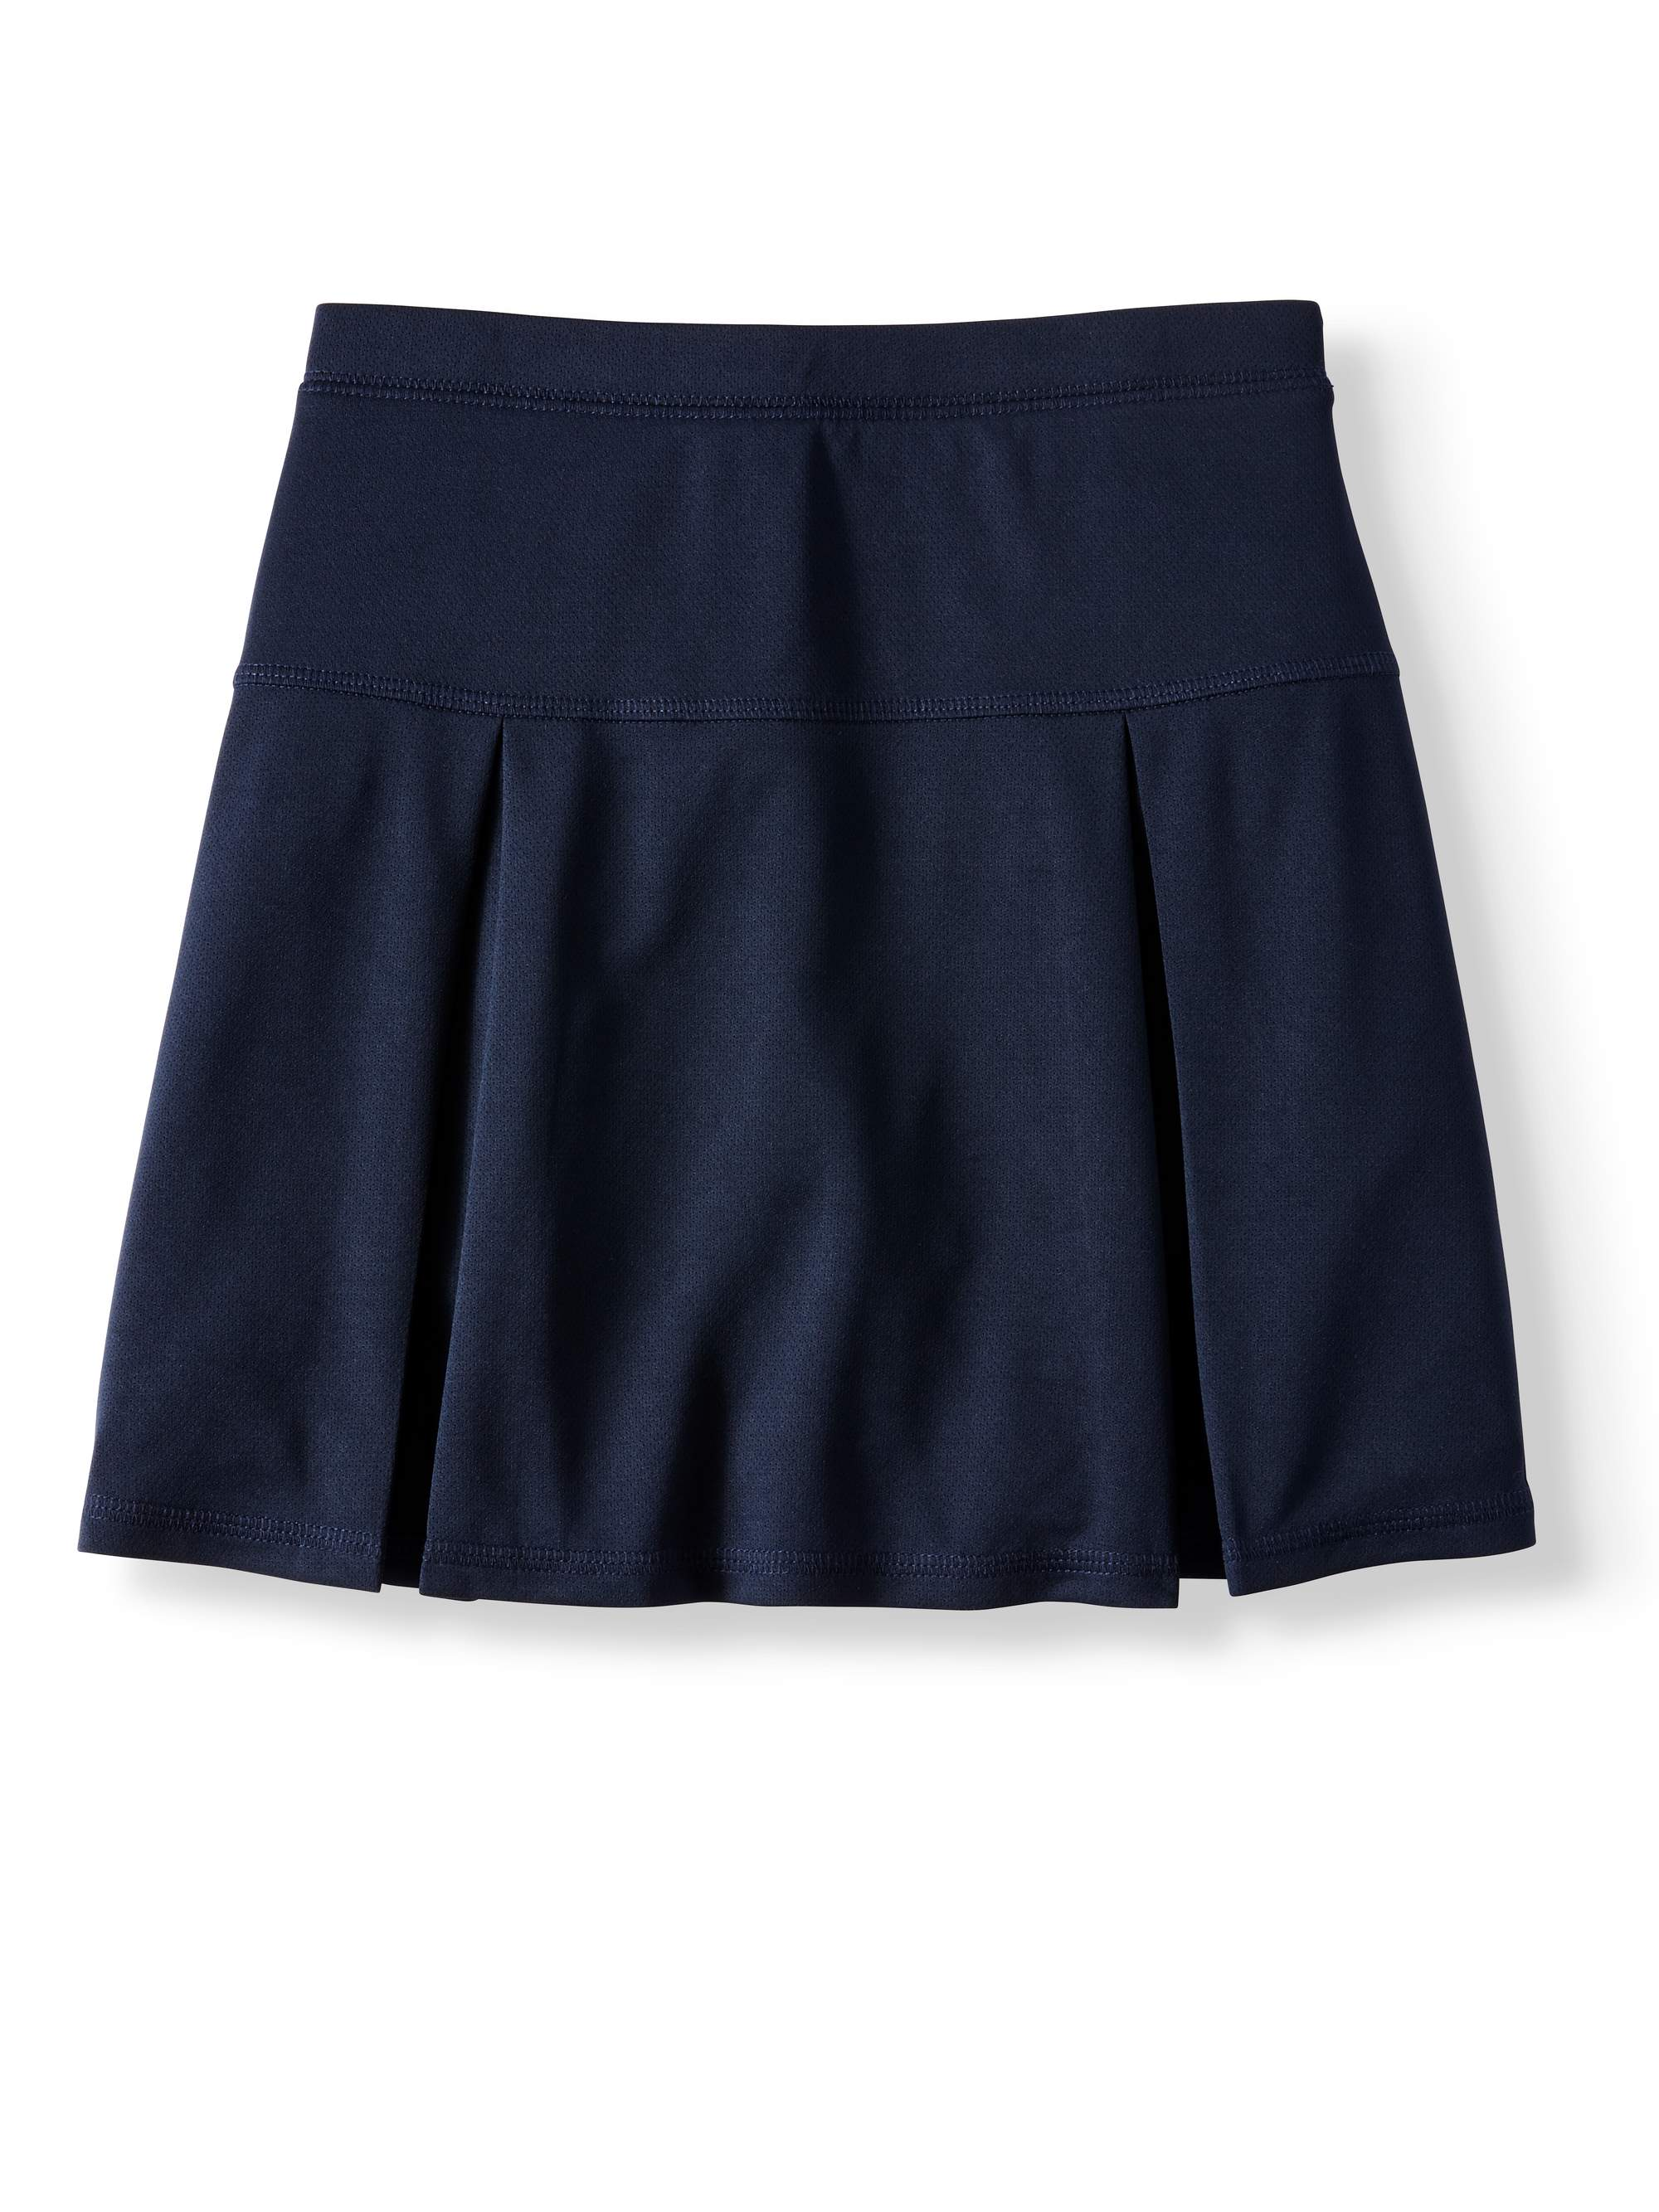 Girls School Uniform Performance Skirt